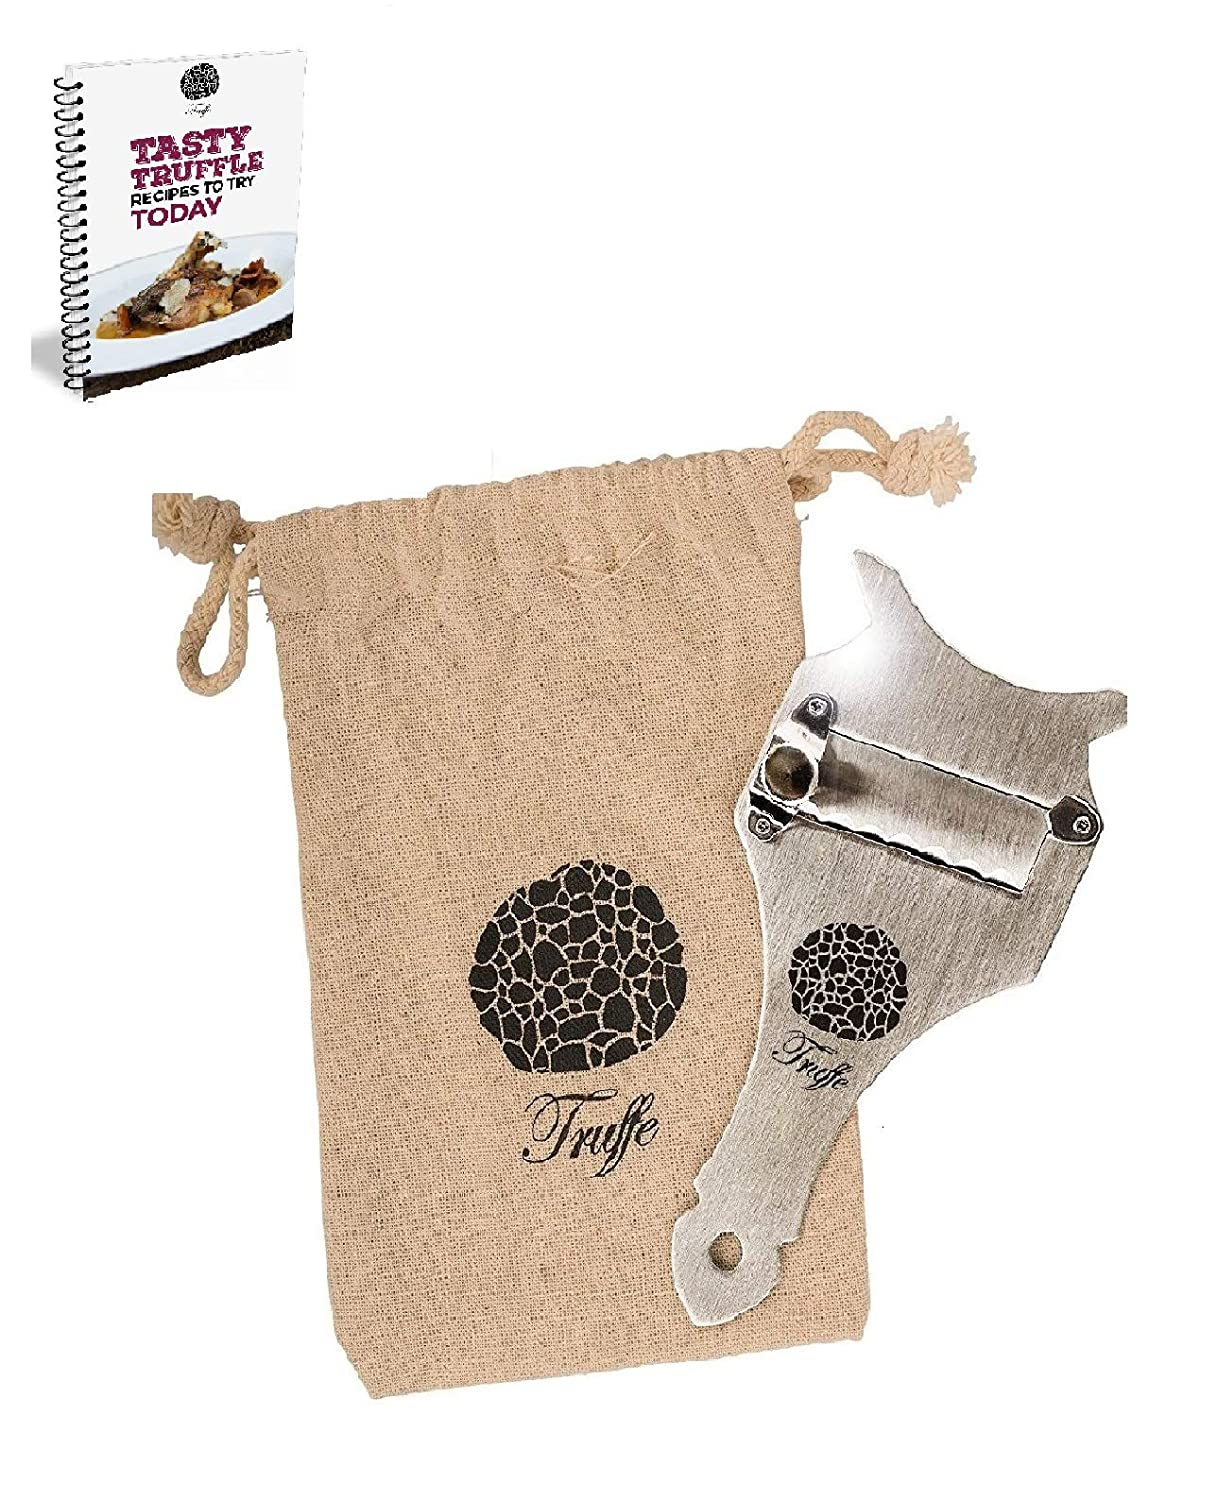 5☆ Truffle Slicer & Chocolate Shaver with Chic Fabric Bag + Recipe E-Book. Trim Those Truffles Today! Also Shaves Cheese, Garlic, Mushrooms & Veggies! Premium Stainless Steel & Adjustable Blade Truffe COMINHKPR112159